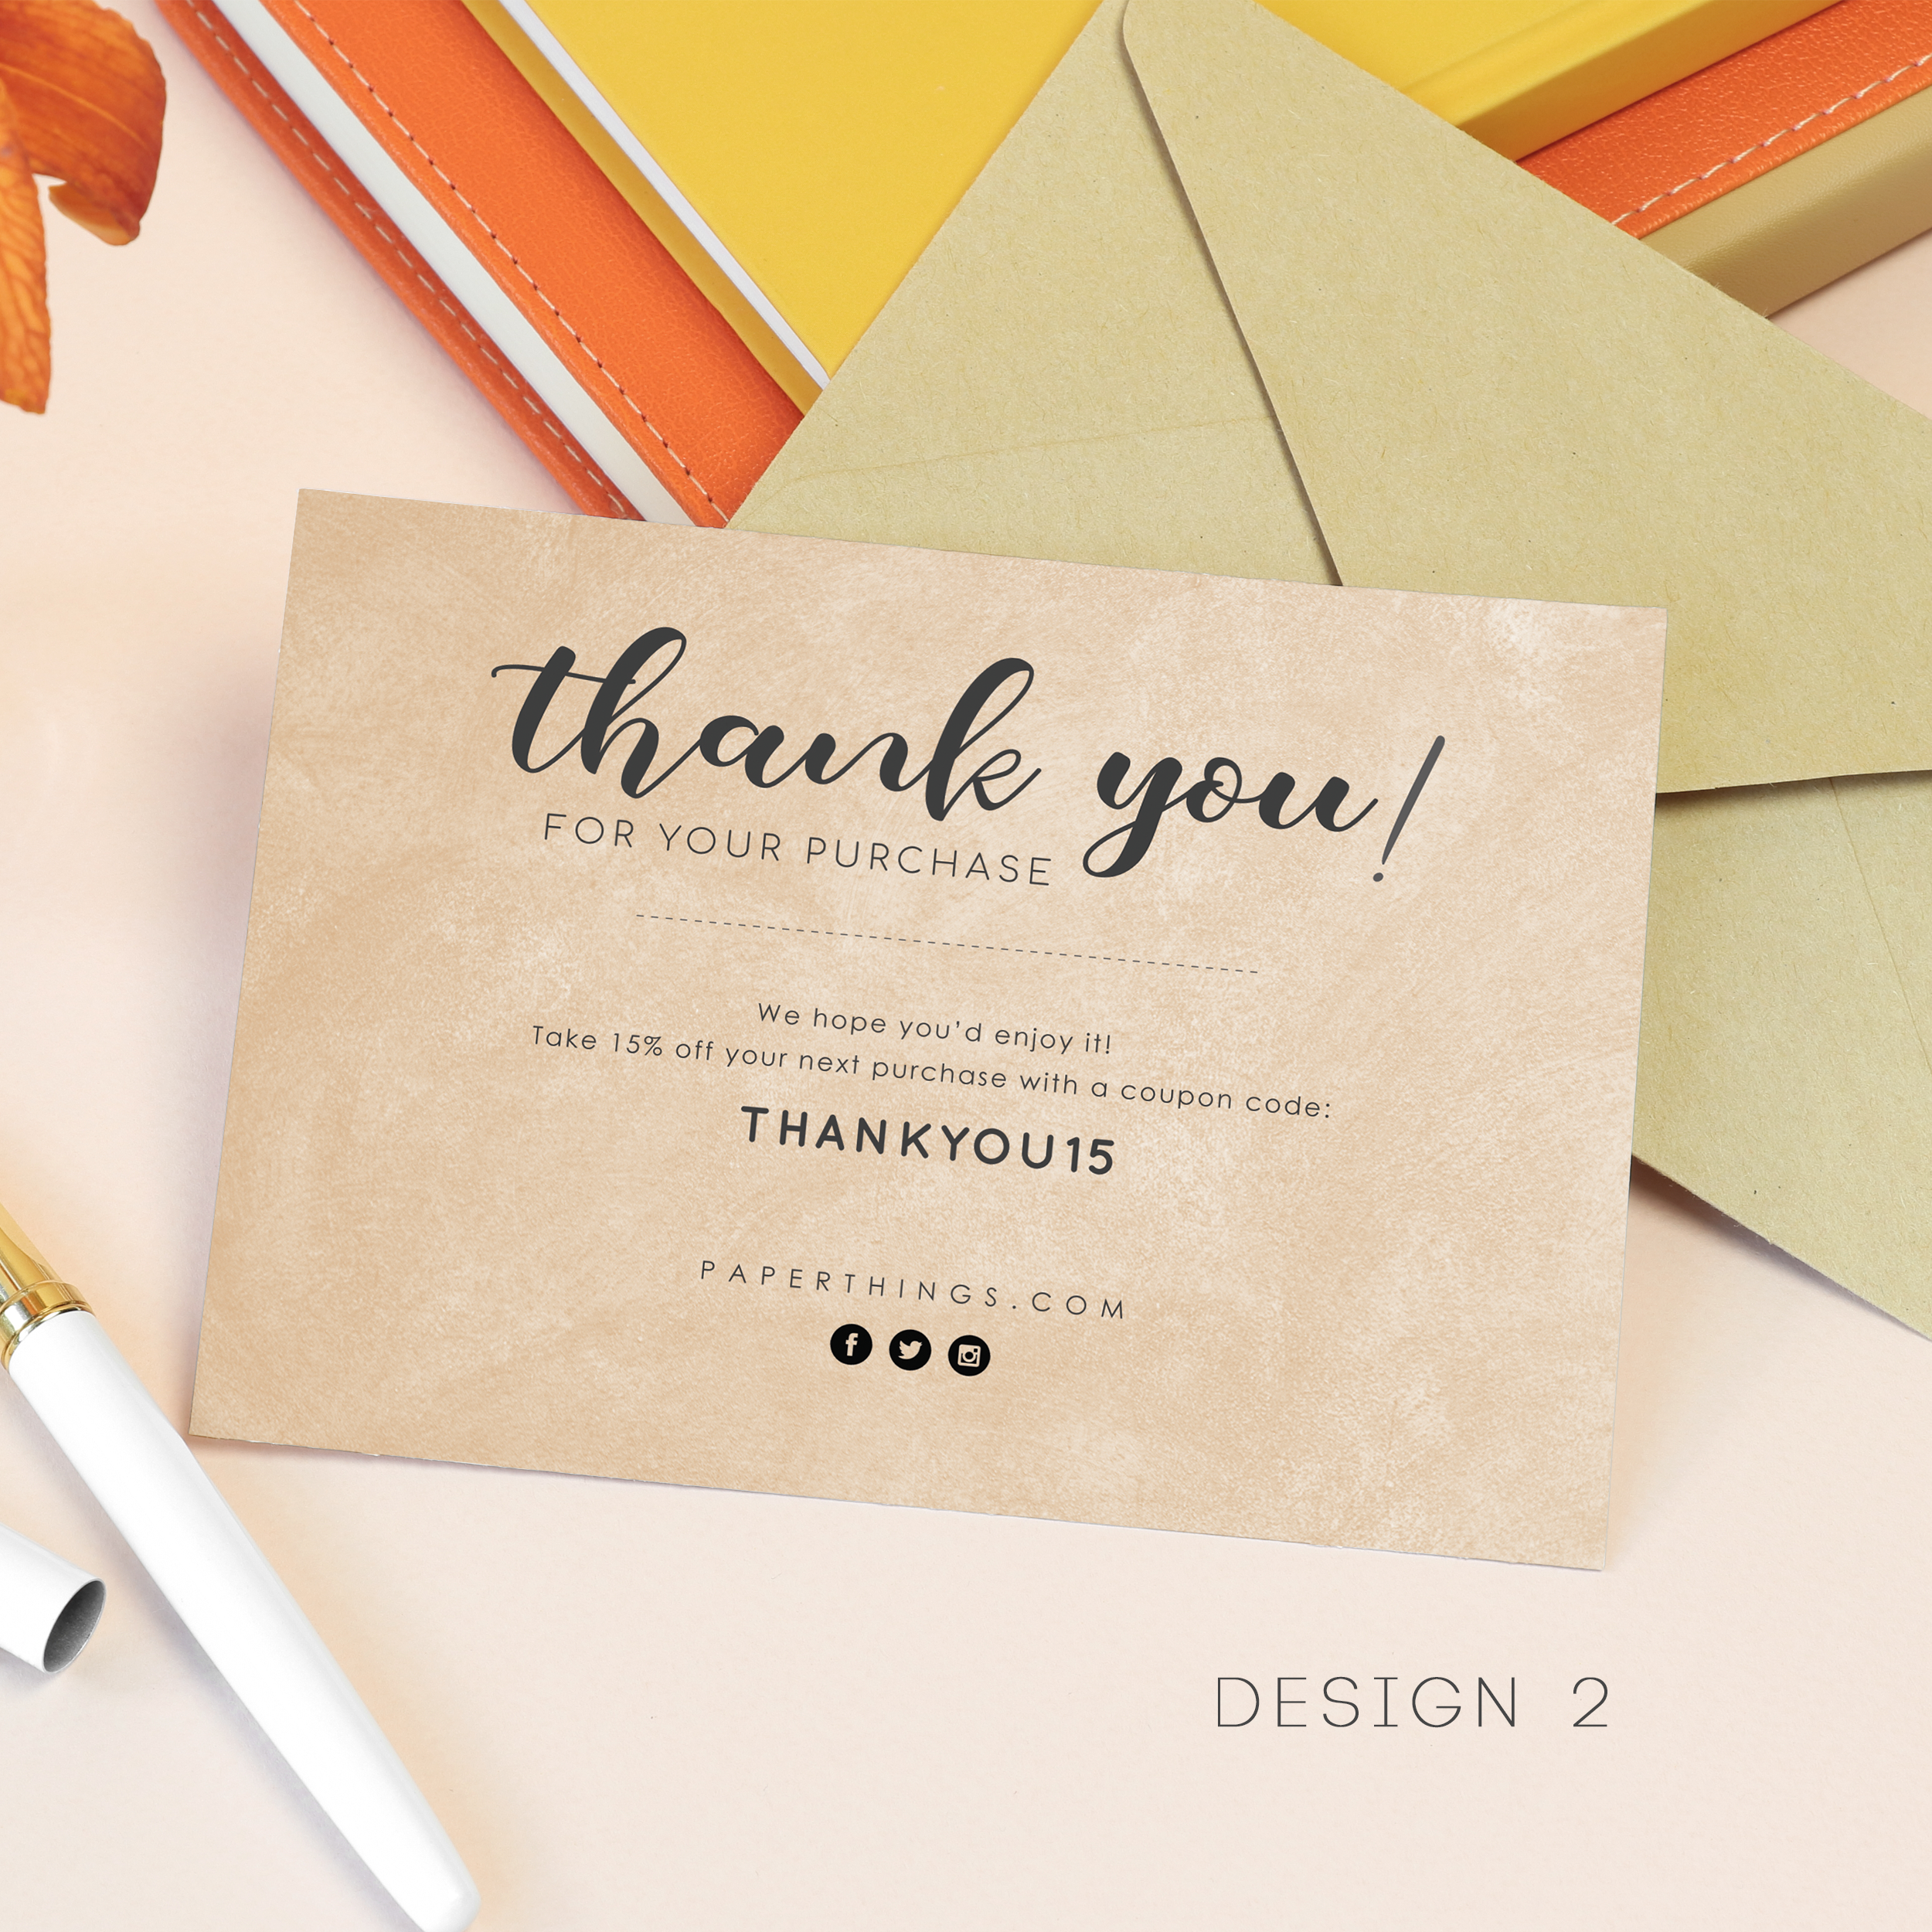 Personalised A6 Customer S Thank You Cards A6 Buyer S Thank You Note Kartu Nama Kartu Nama Bisnis Kartu